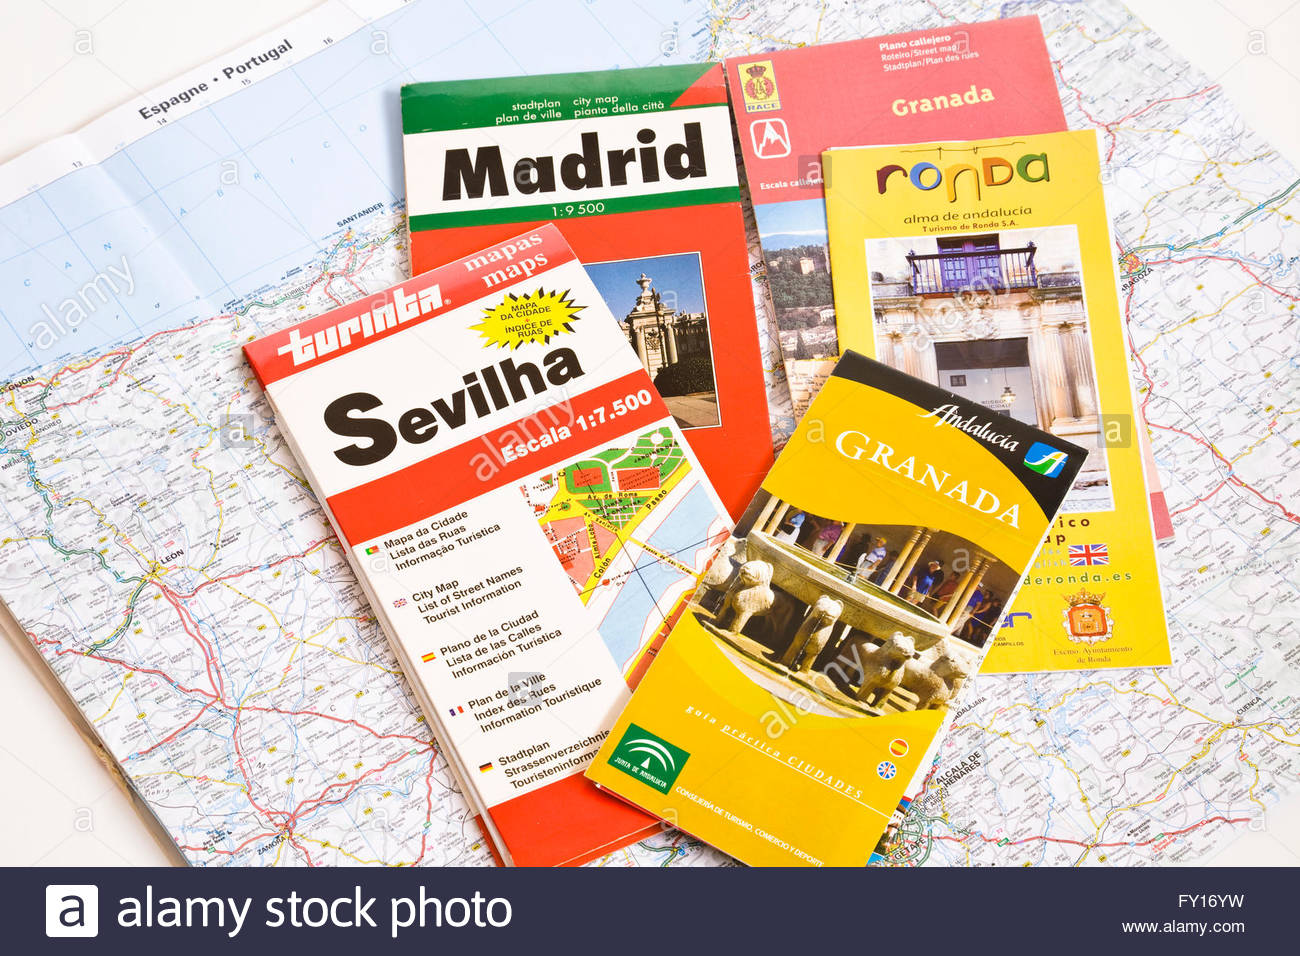 Travel brochures and map of Spain - Stock Image